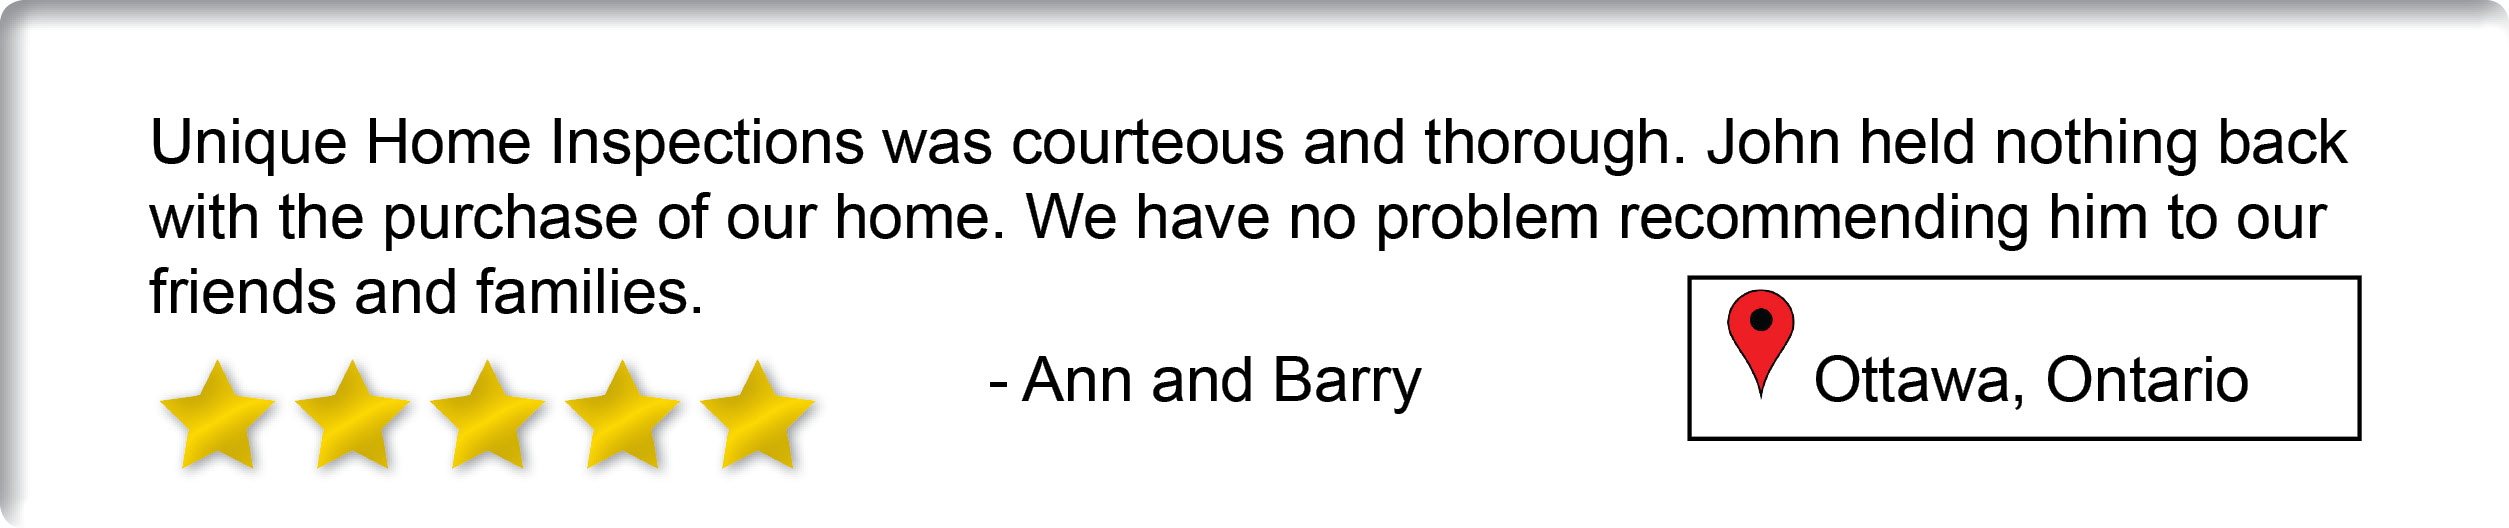 Ann and Barry